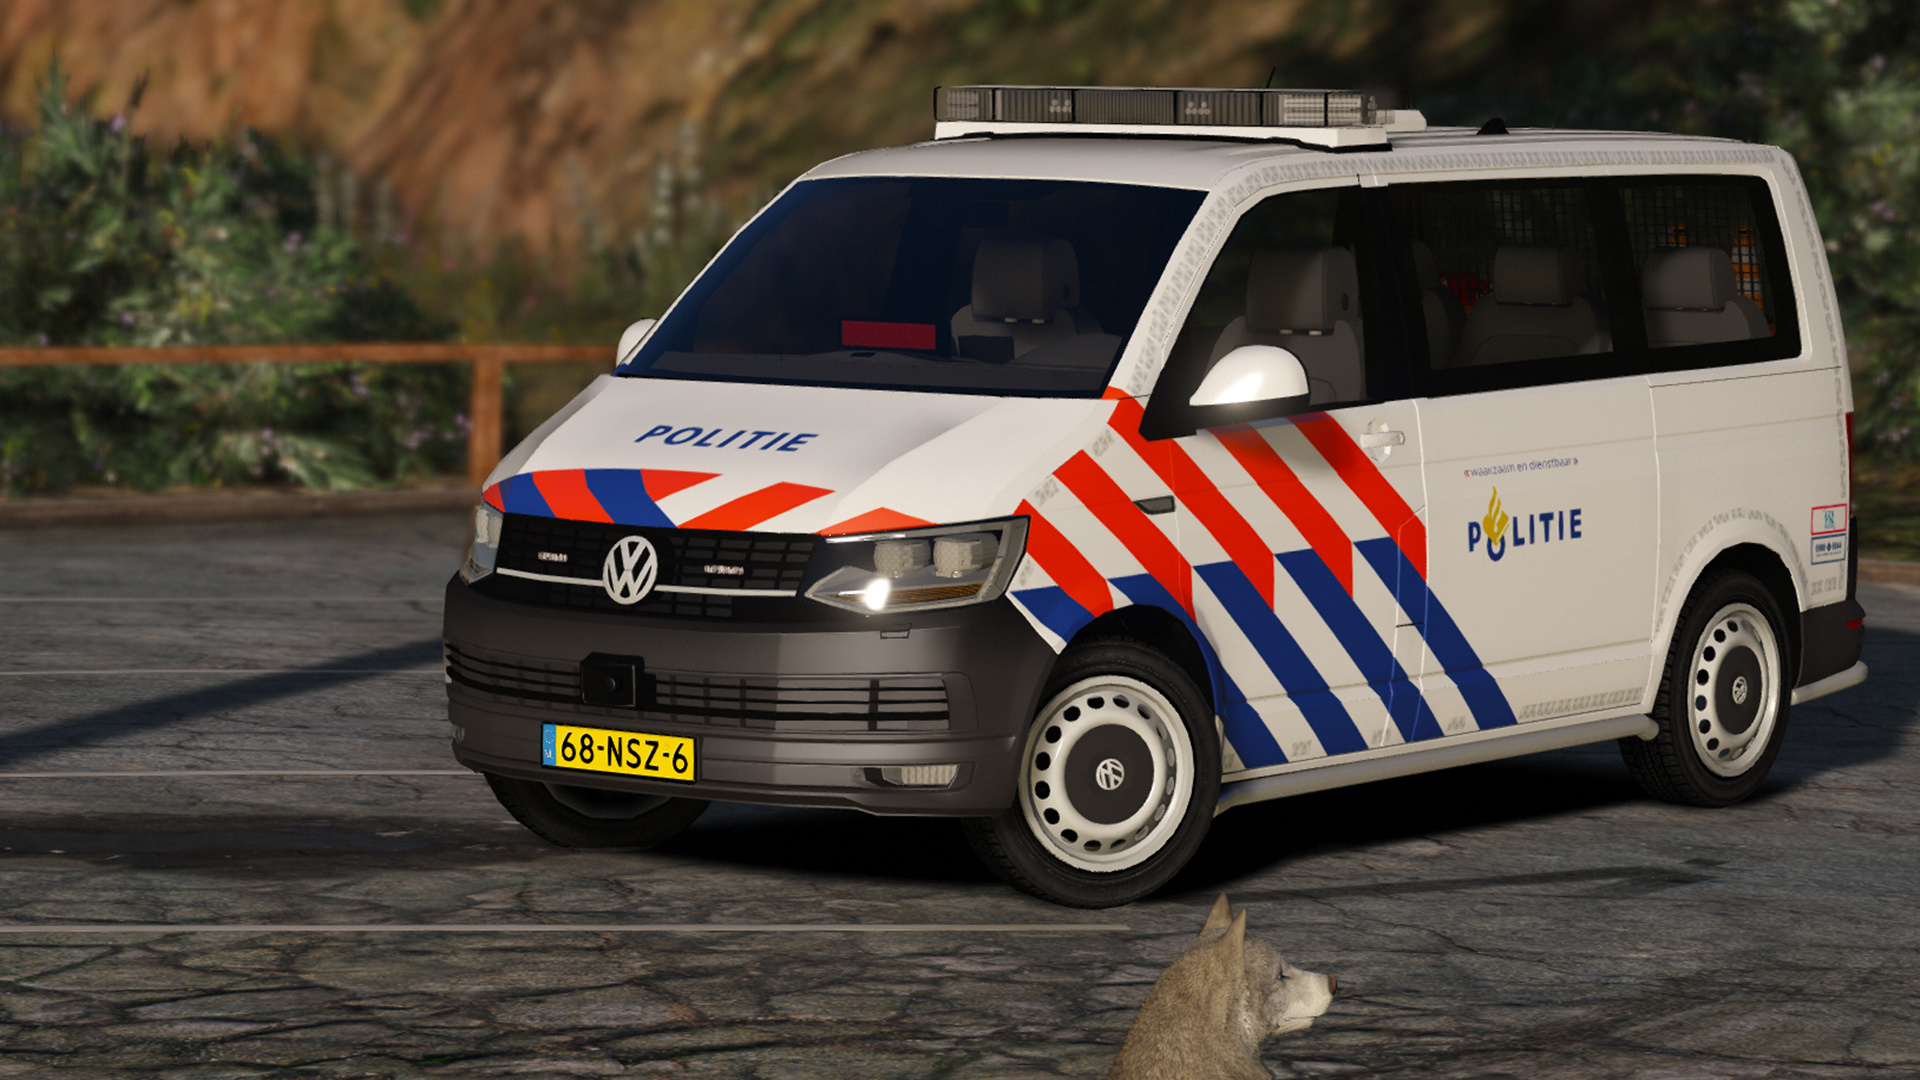 volkswagen t6 dutch police teammoh els gta5. Black Bedroom Furniture Sets. Home Design Ideas